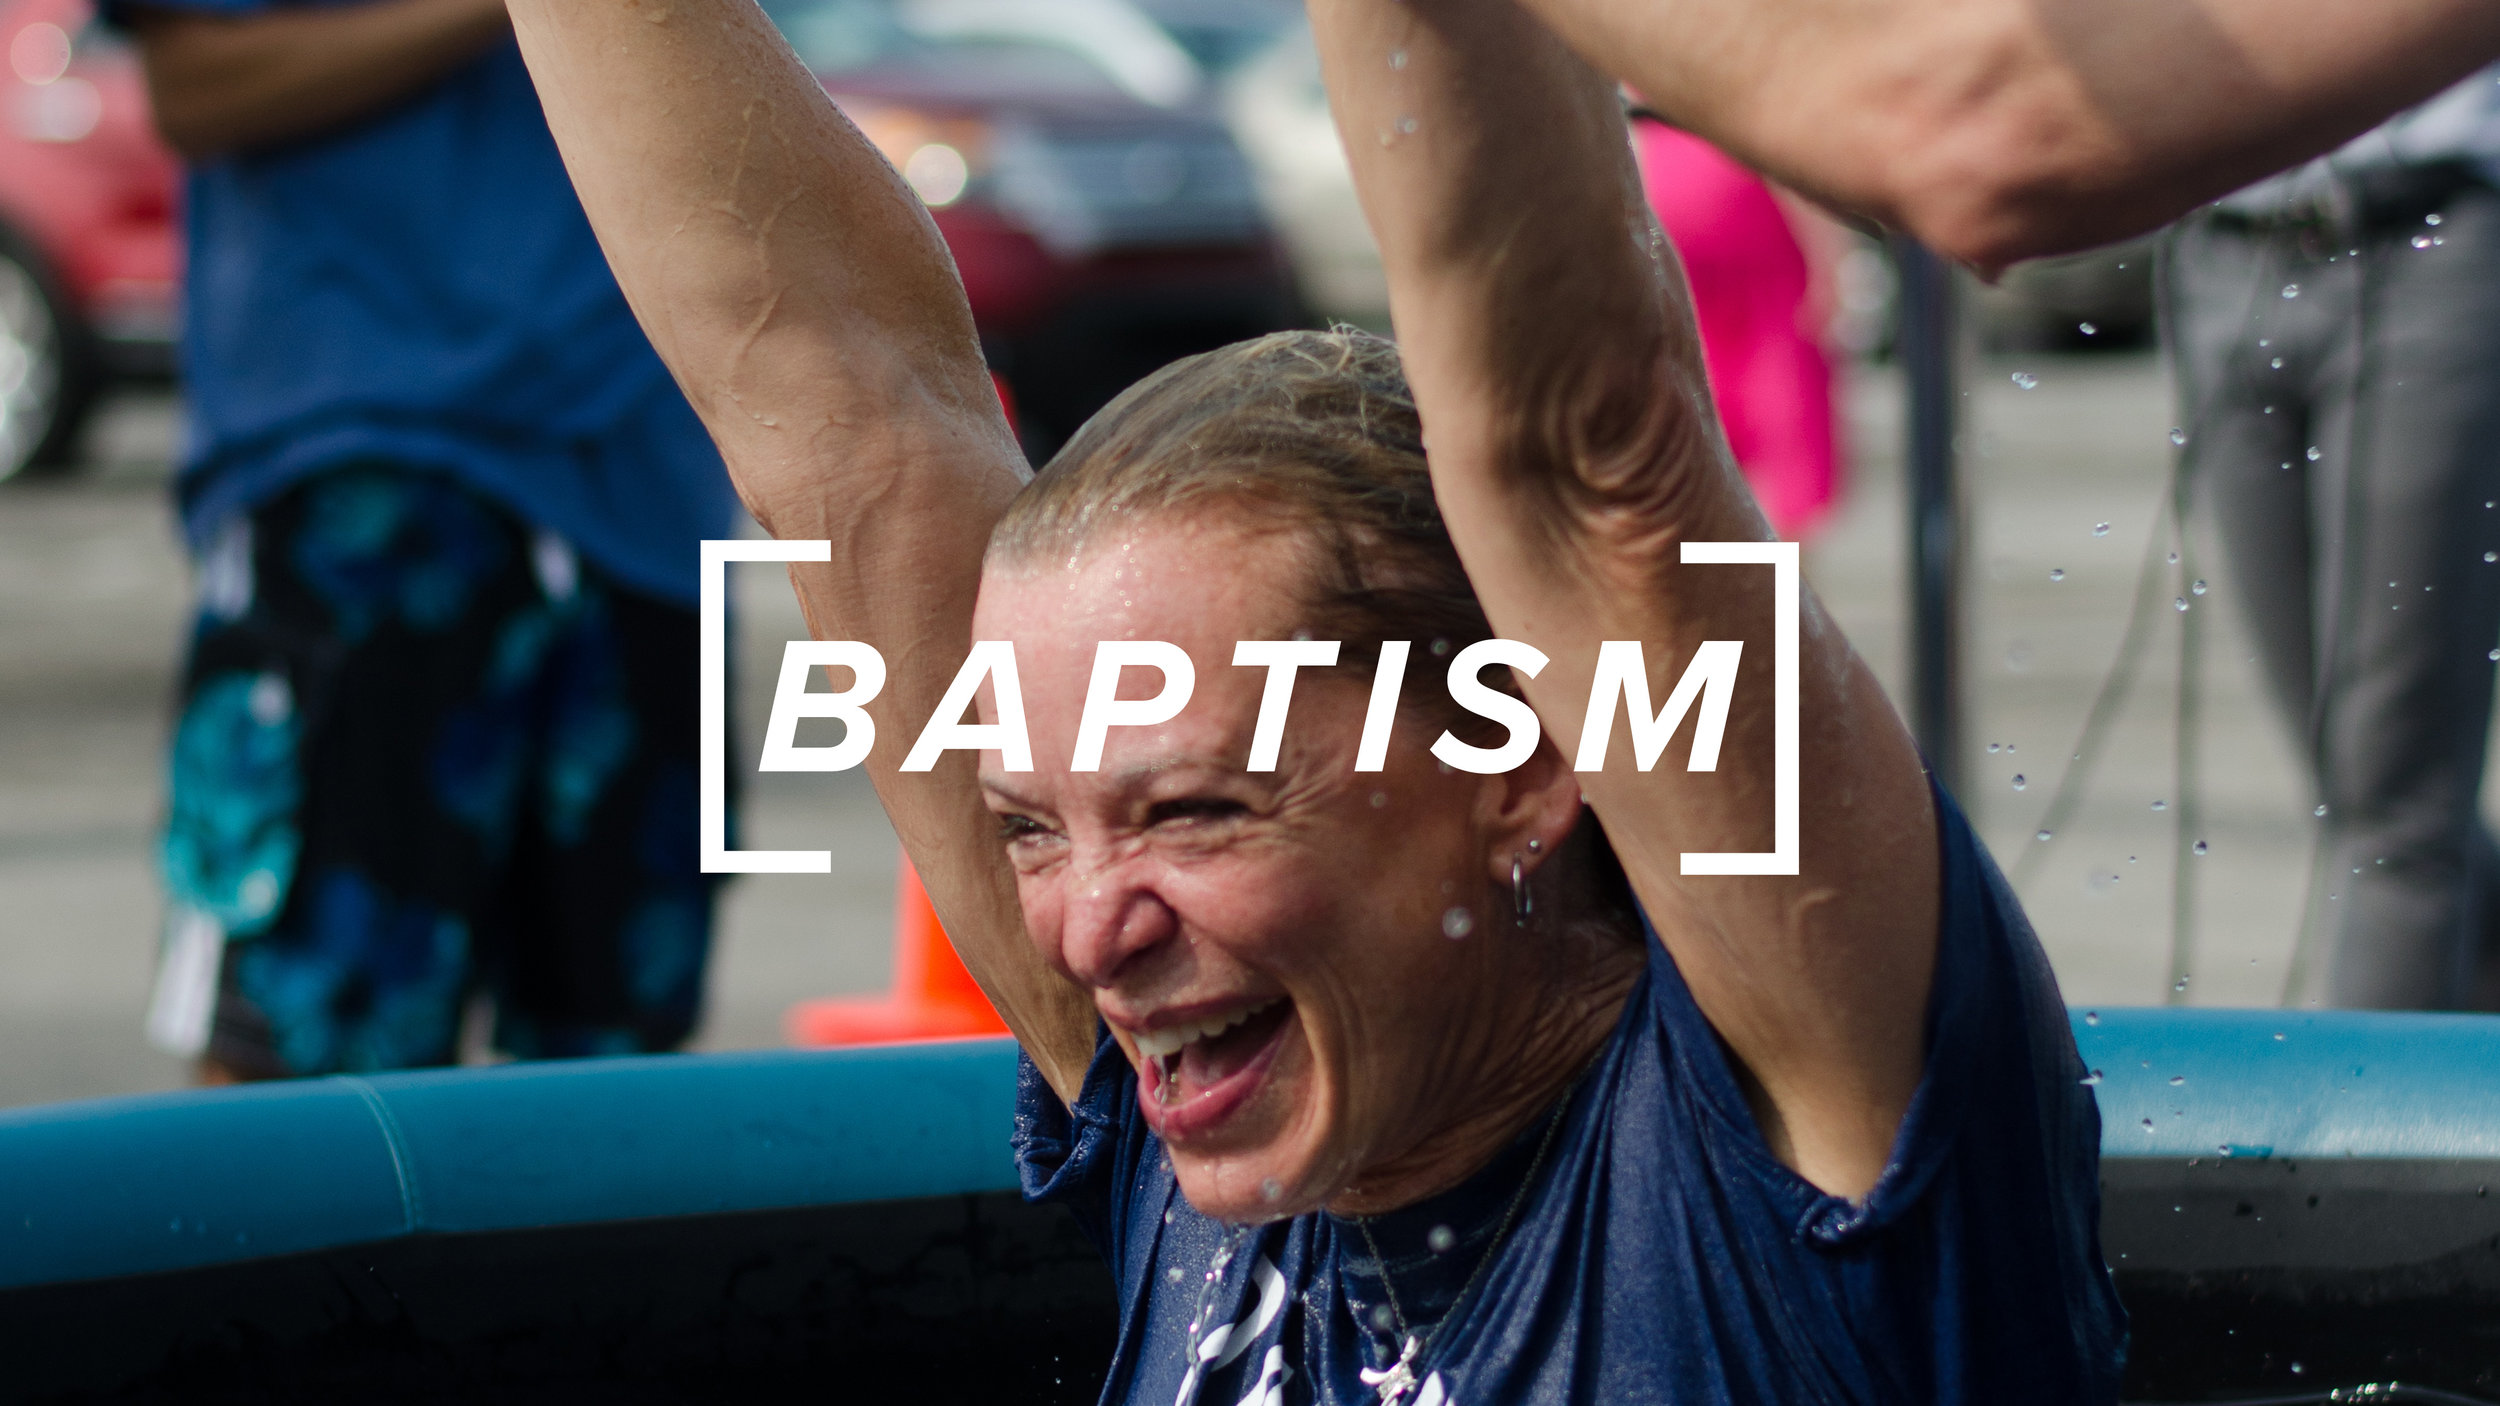 2018 baptism graphic.jpg